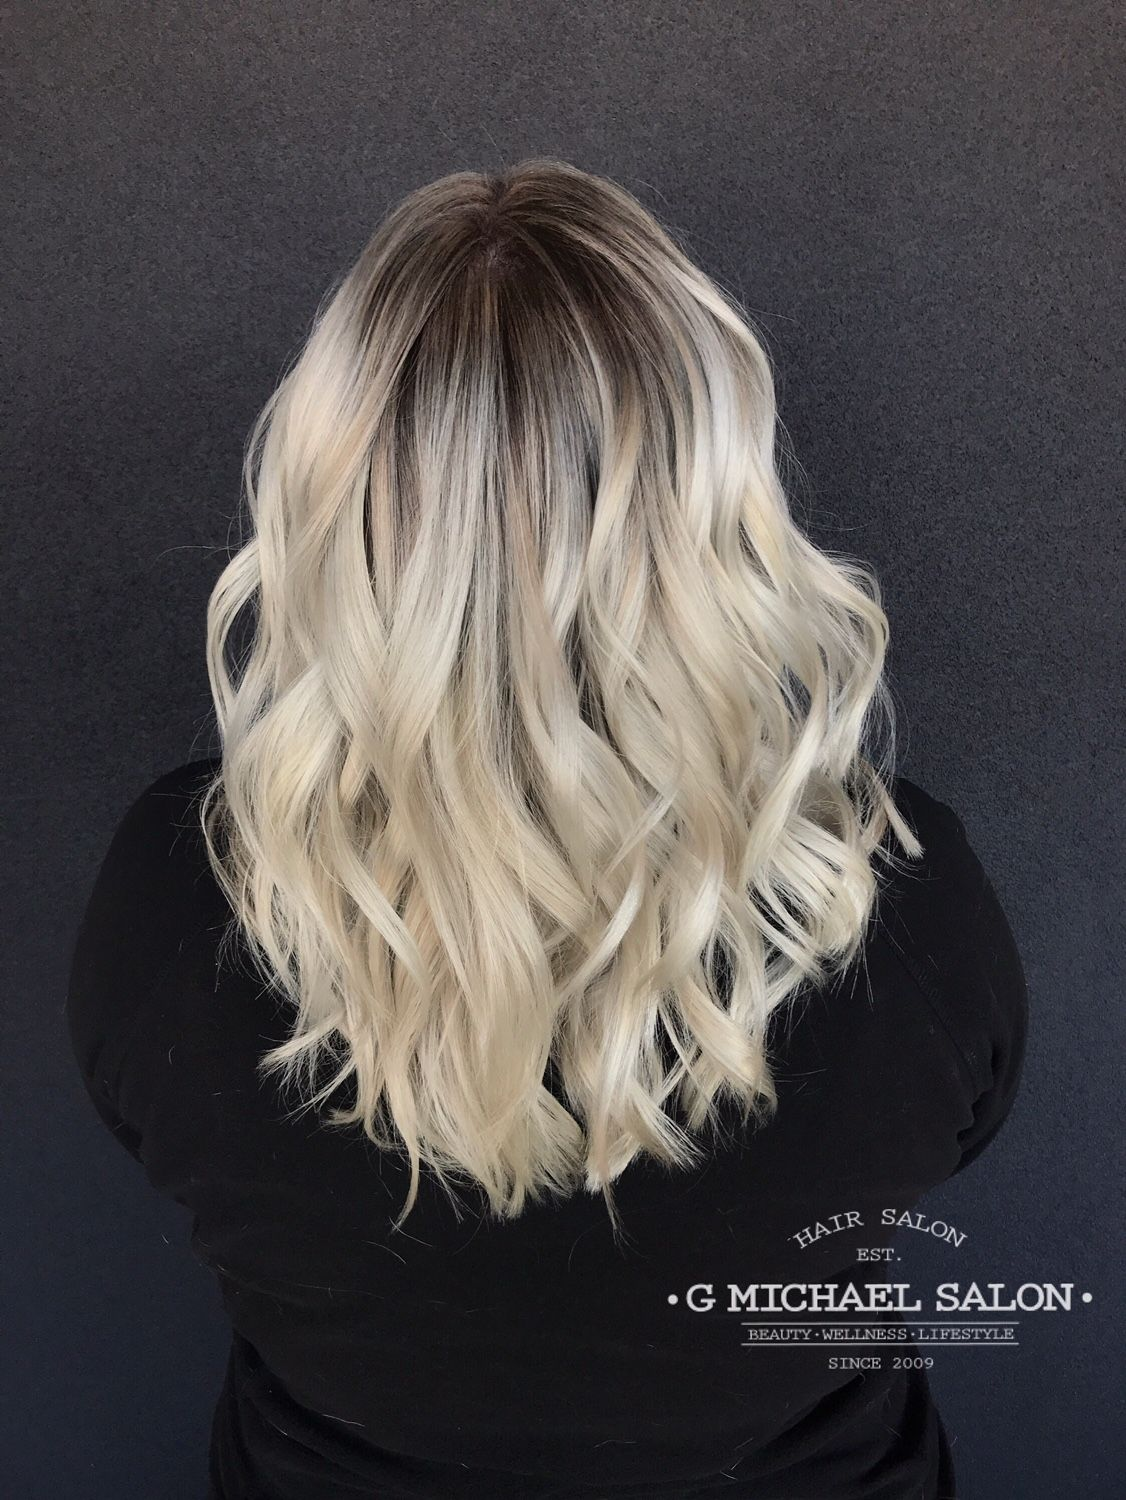 Pin By G Michael Salon Indianapolis On Hair In 2020 Hair Inspiration Color Celebrity Hair Stylist Cool Hair Color